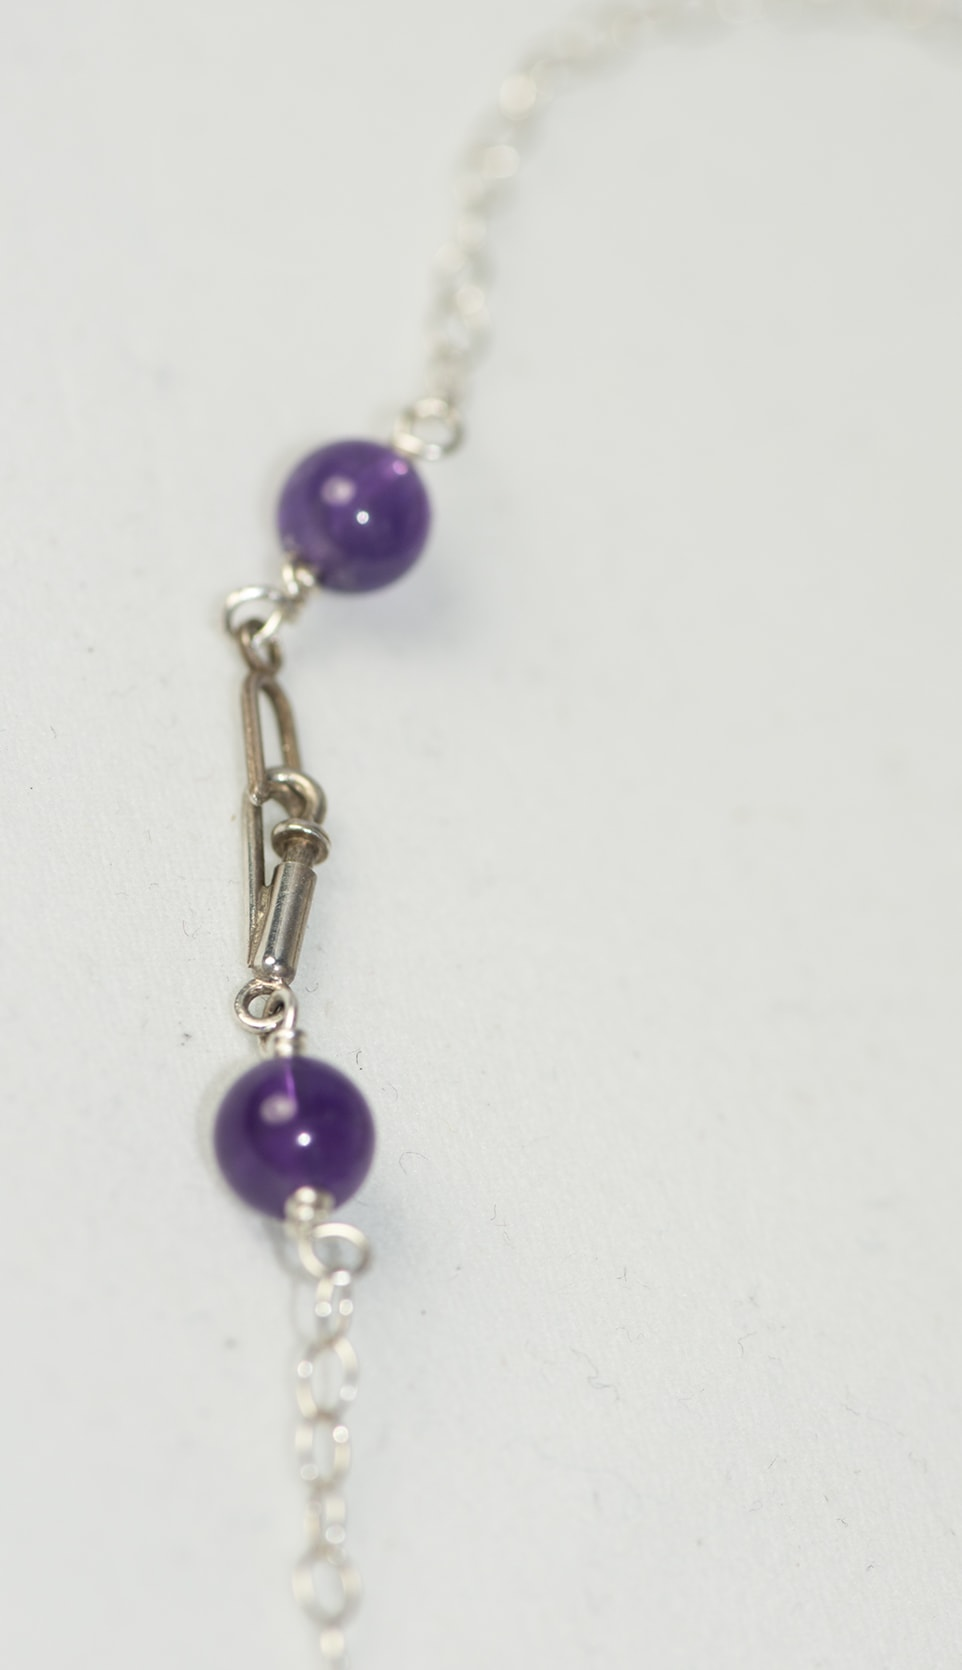 Lemurian Crystals, Amethyst Necklace Clasp